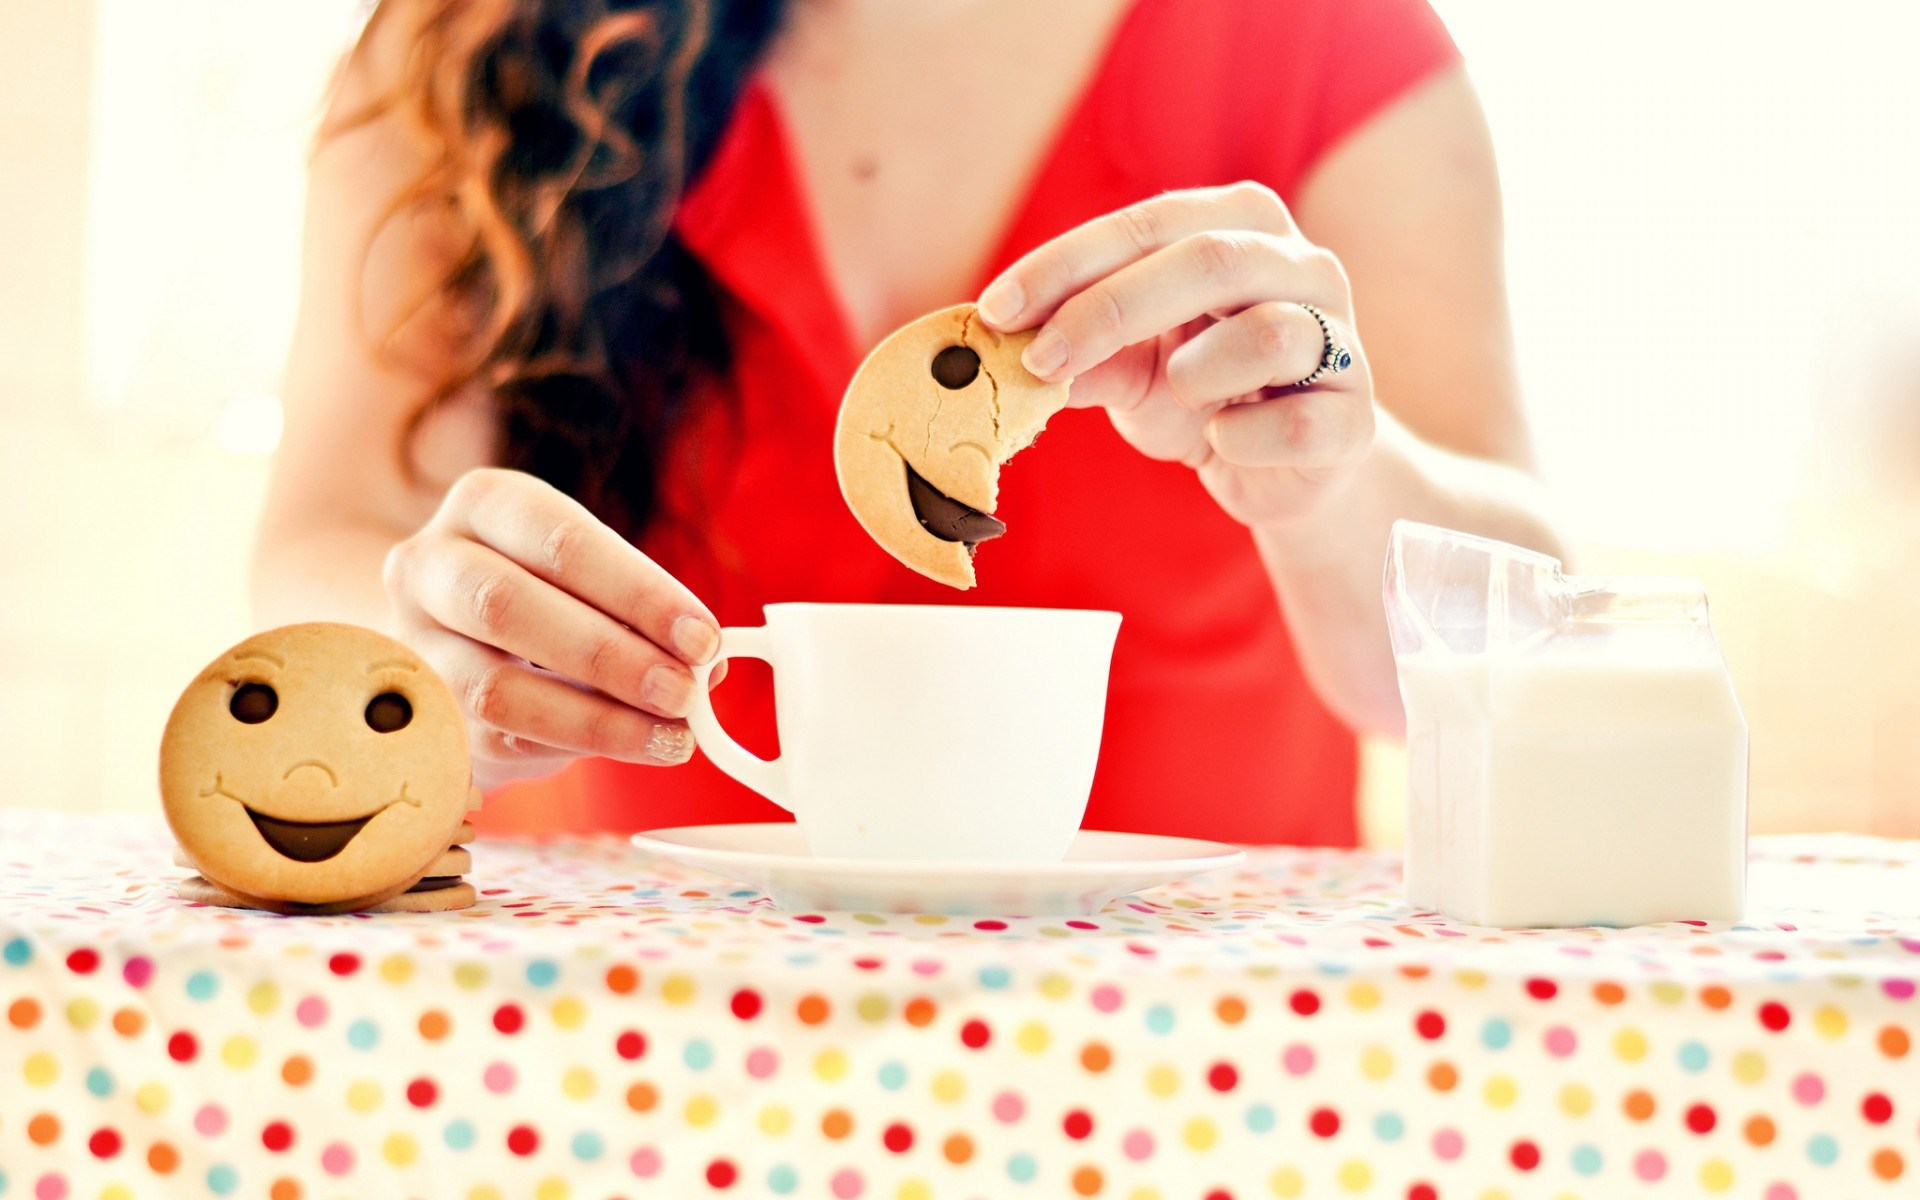 Girl Mug Cup Tea Cookies Smile Morning Mood